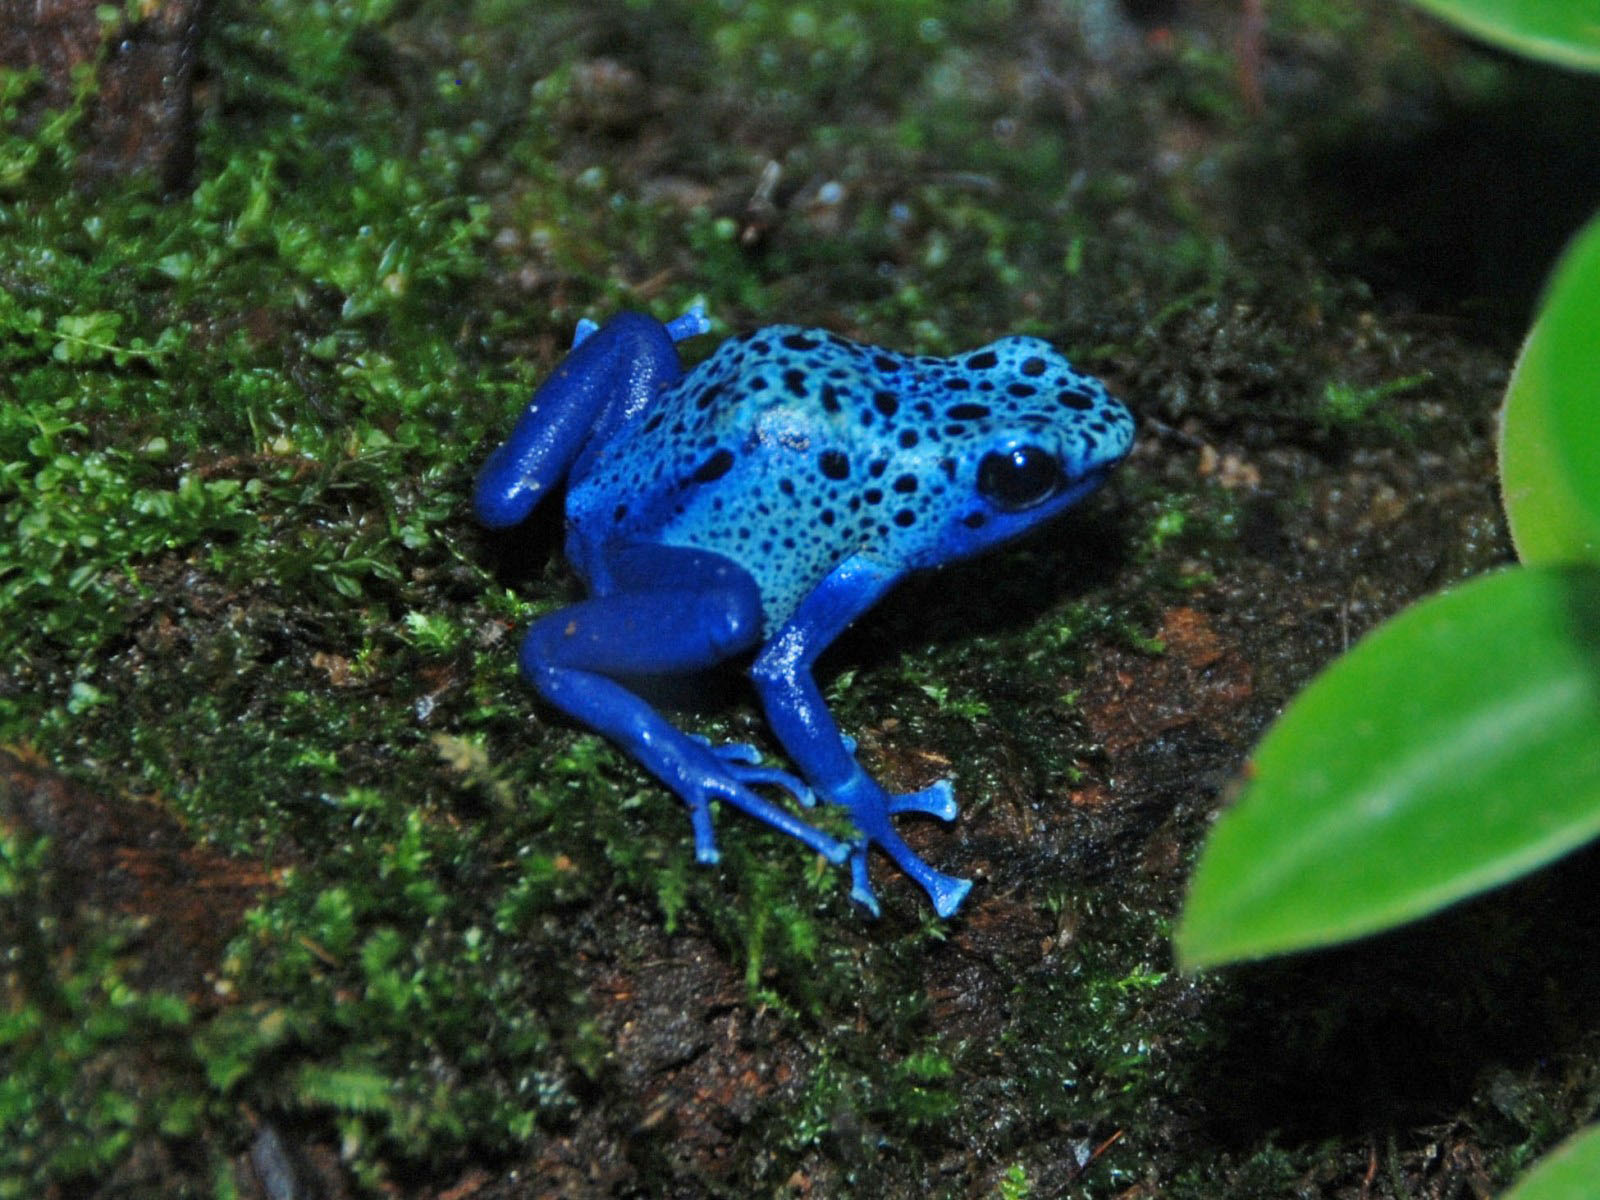 The Online Zoo - Dyeing Poison Dart Frog